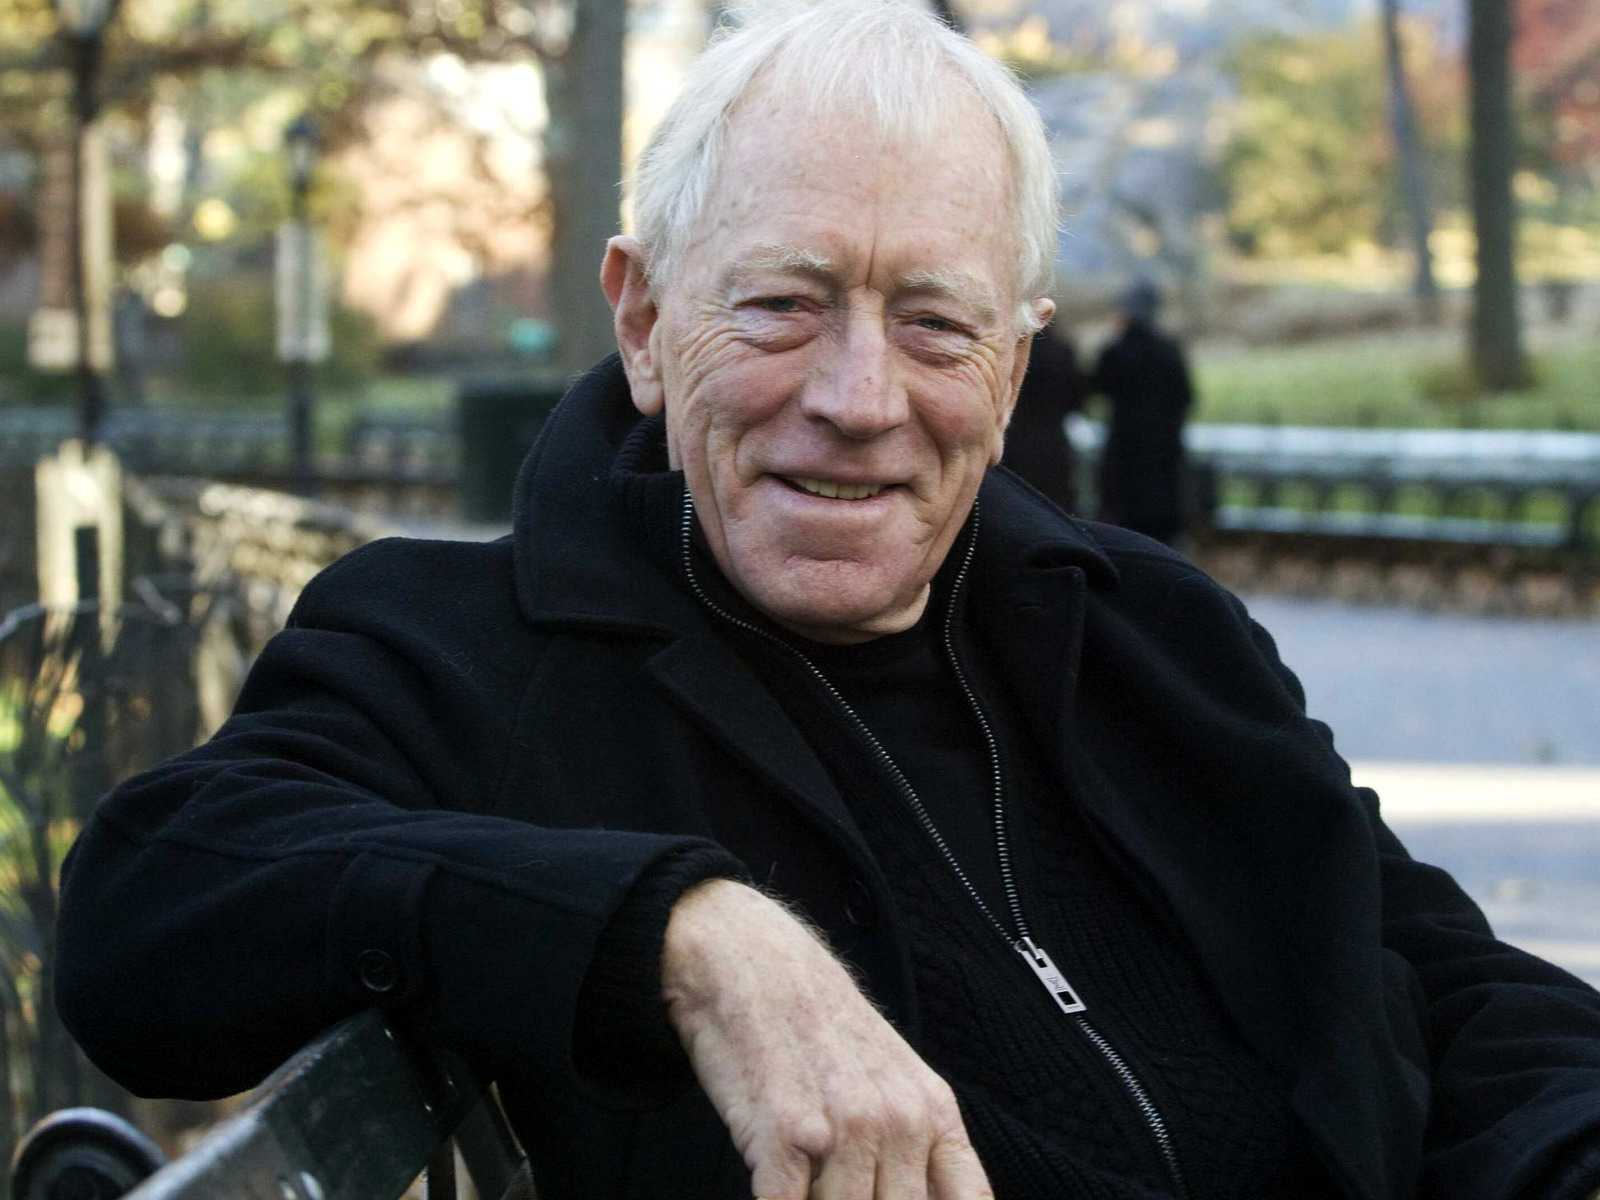 Max Von Sydow Joins Game Of Thrones As The Three-Eyed Raven | Game of Thrones